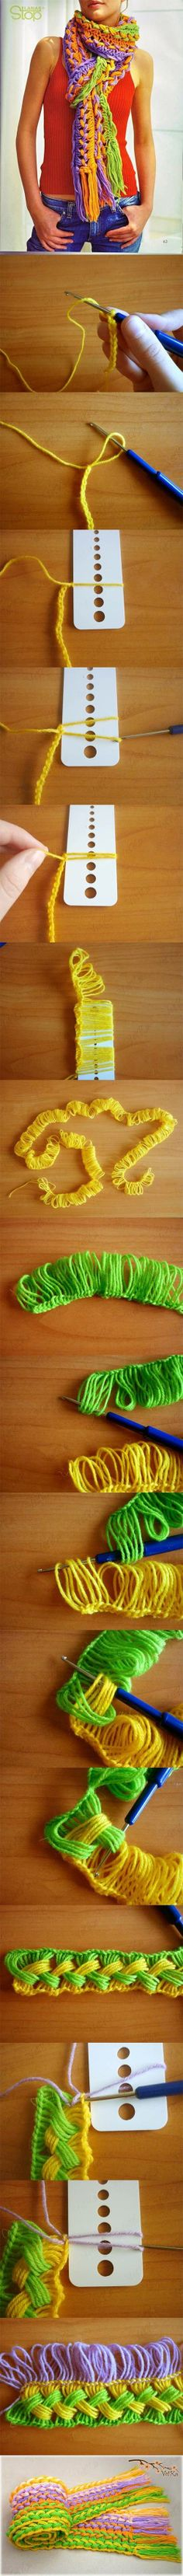 Don't click the link, it's spammy, but the photos in the pin are pretty self explanatory - DIY Hook Custom Scarf